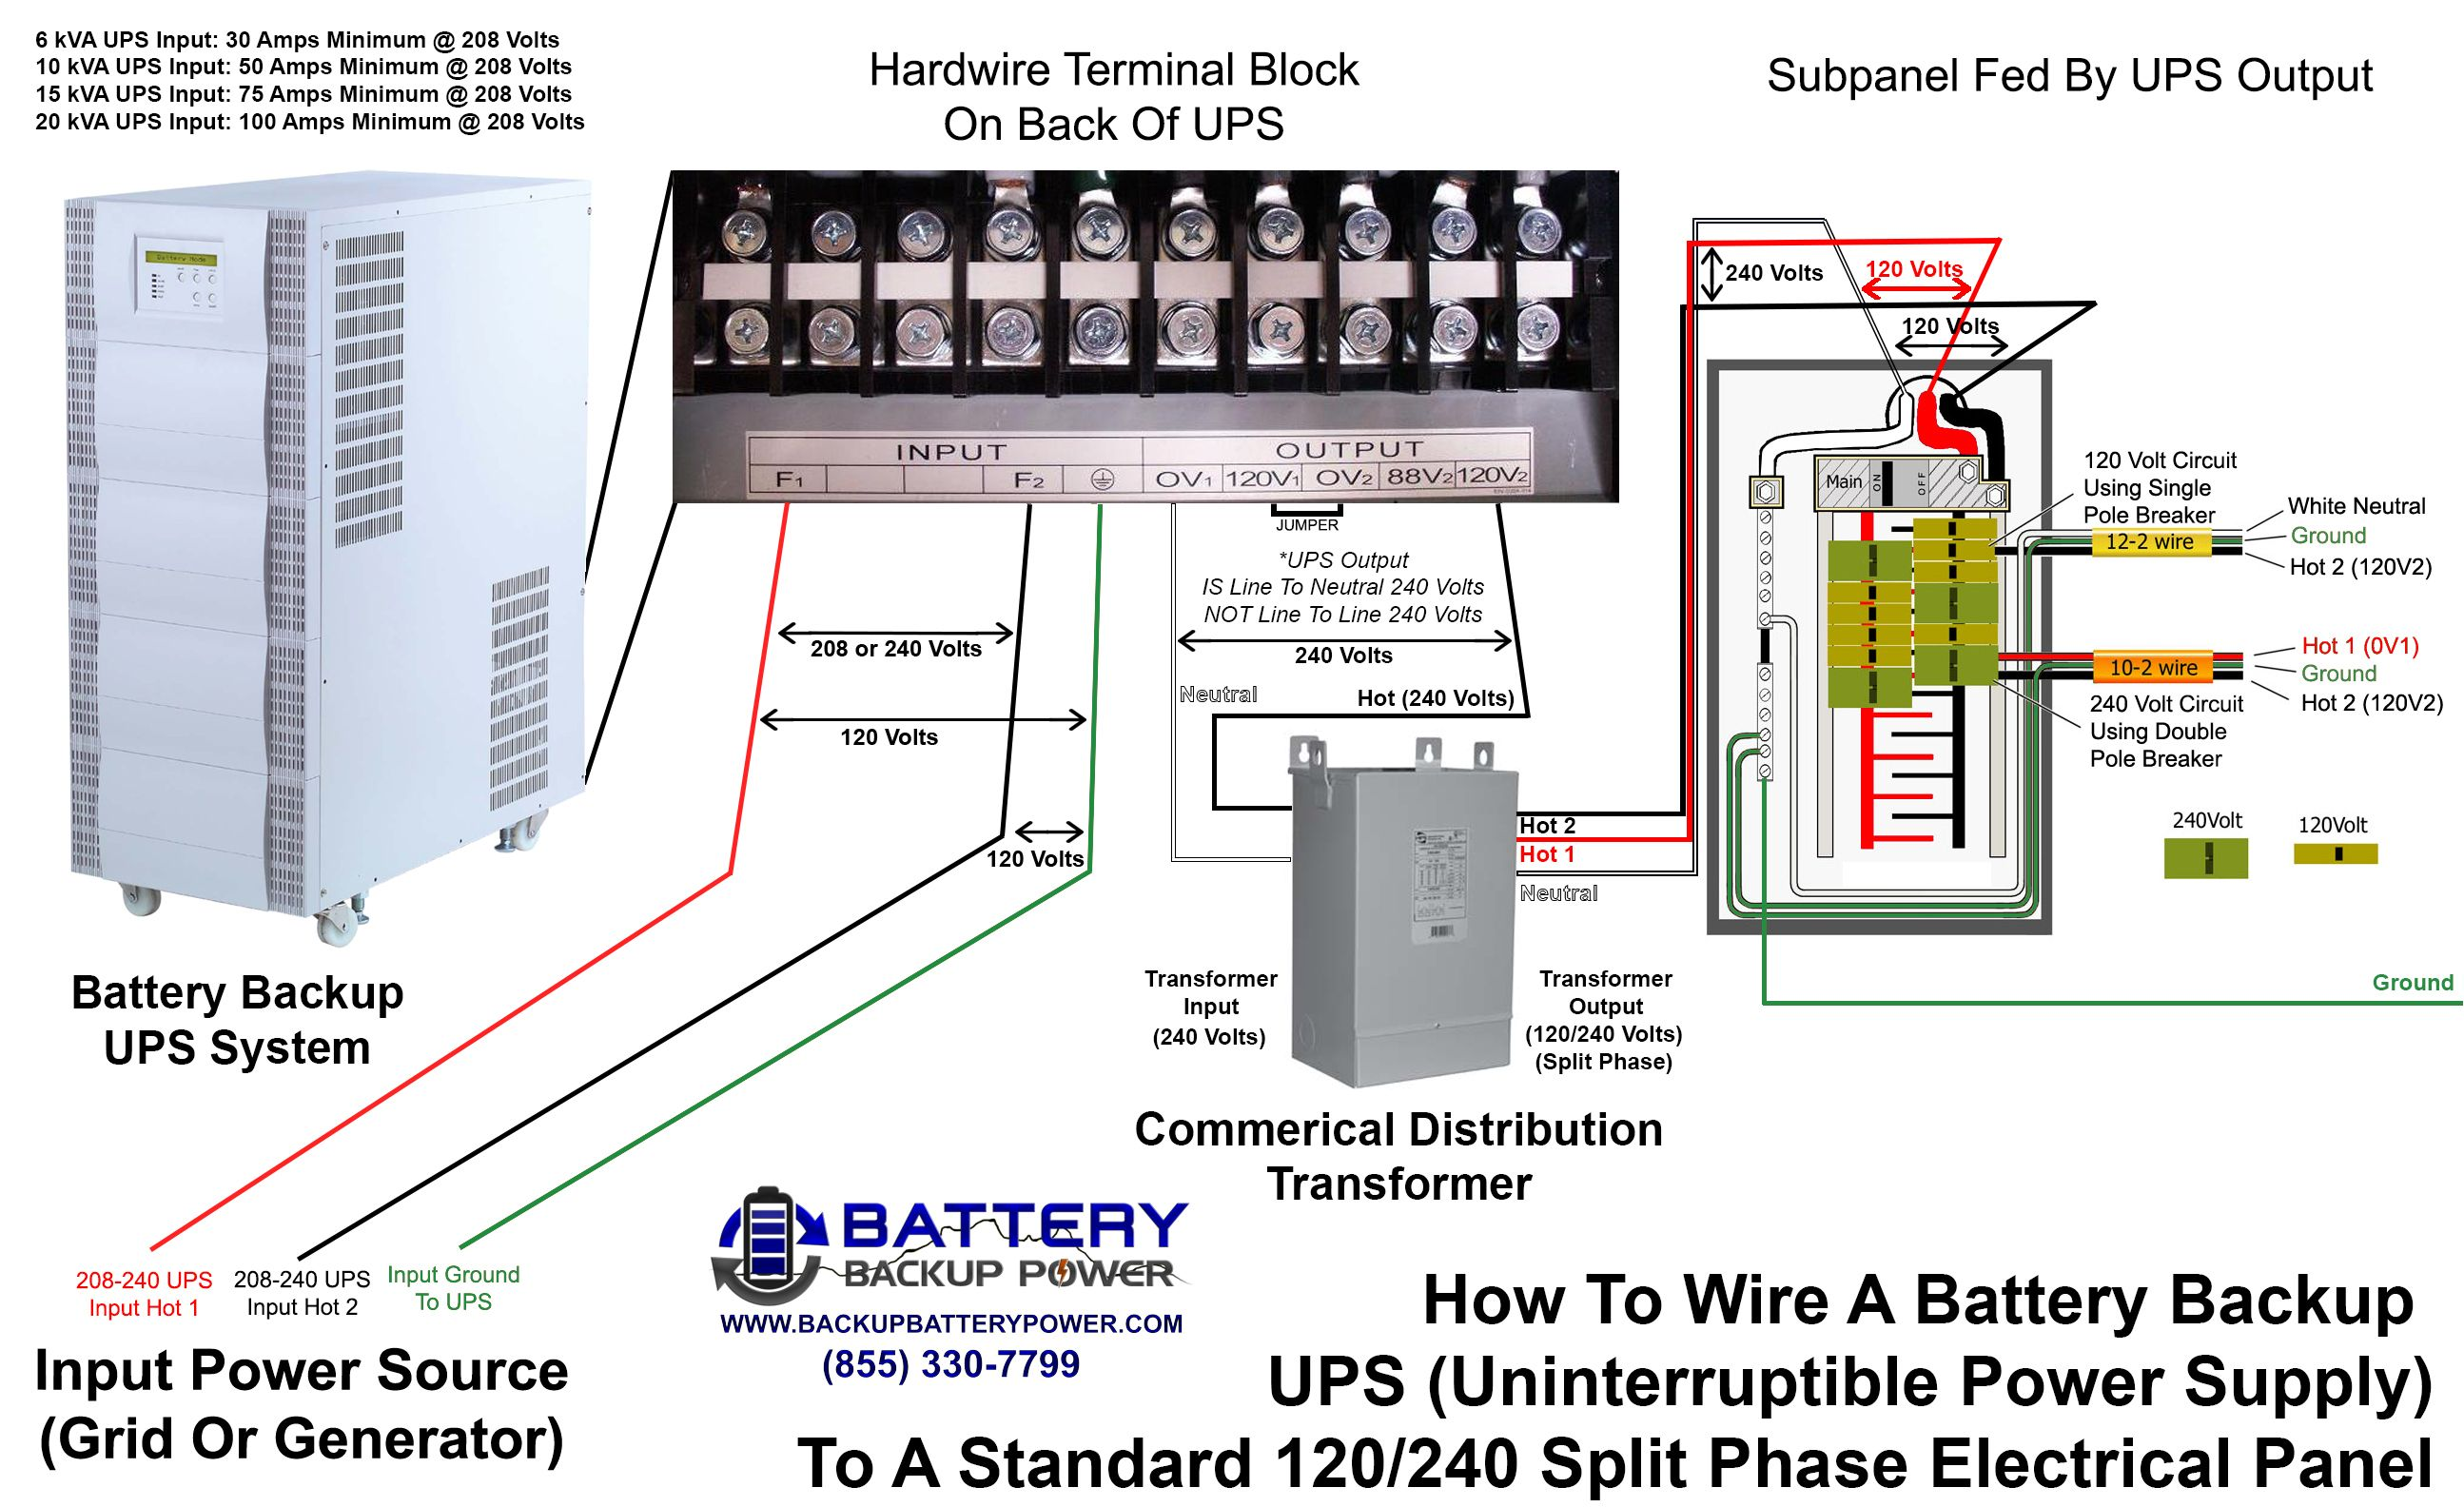 pow wiring diagrams ups wiring library how to wire a ups to a standard 120 240 split phase electrical panelhow to wire